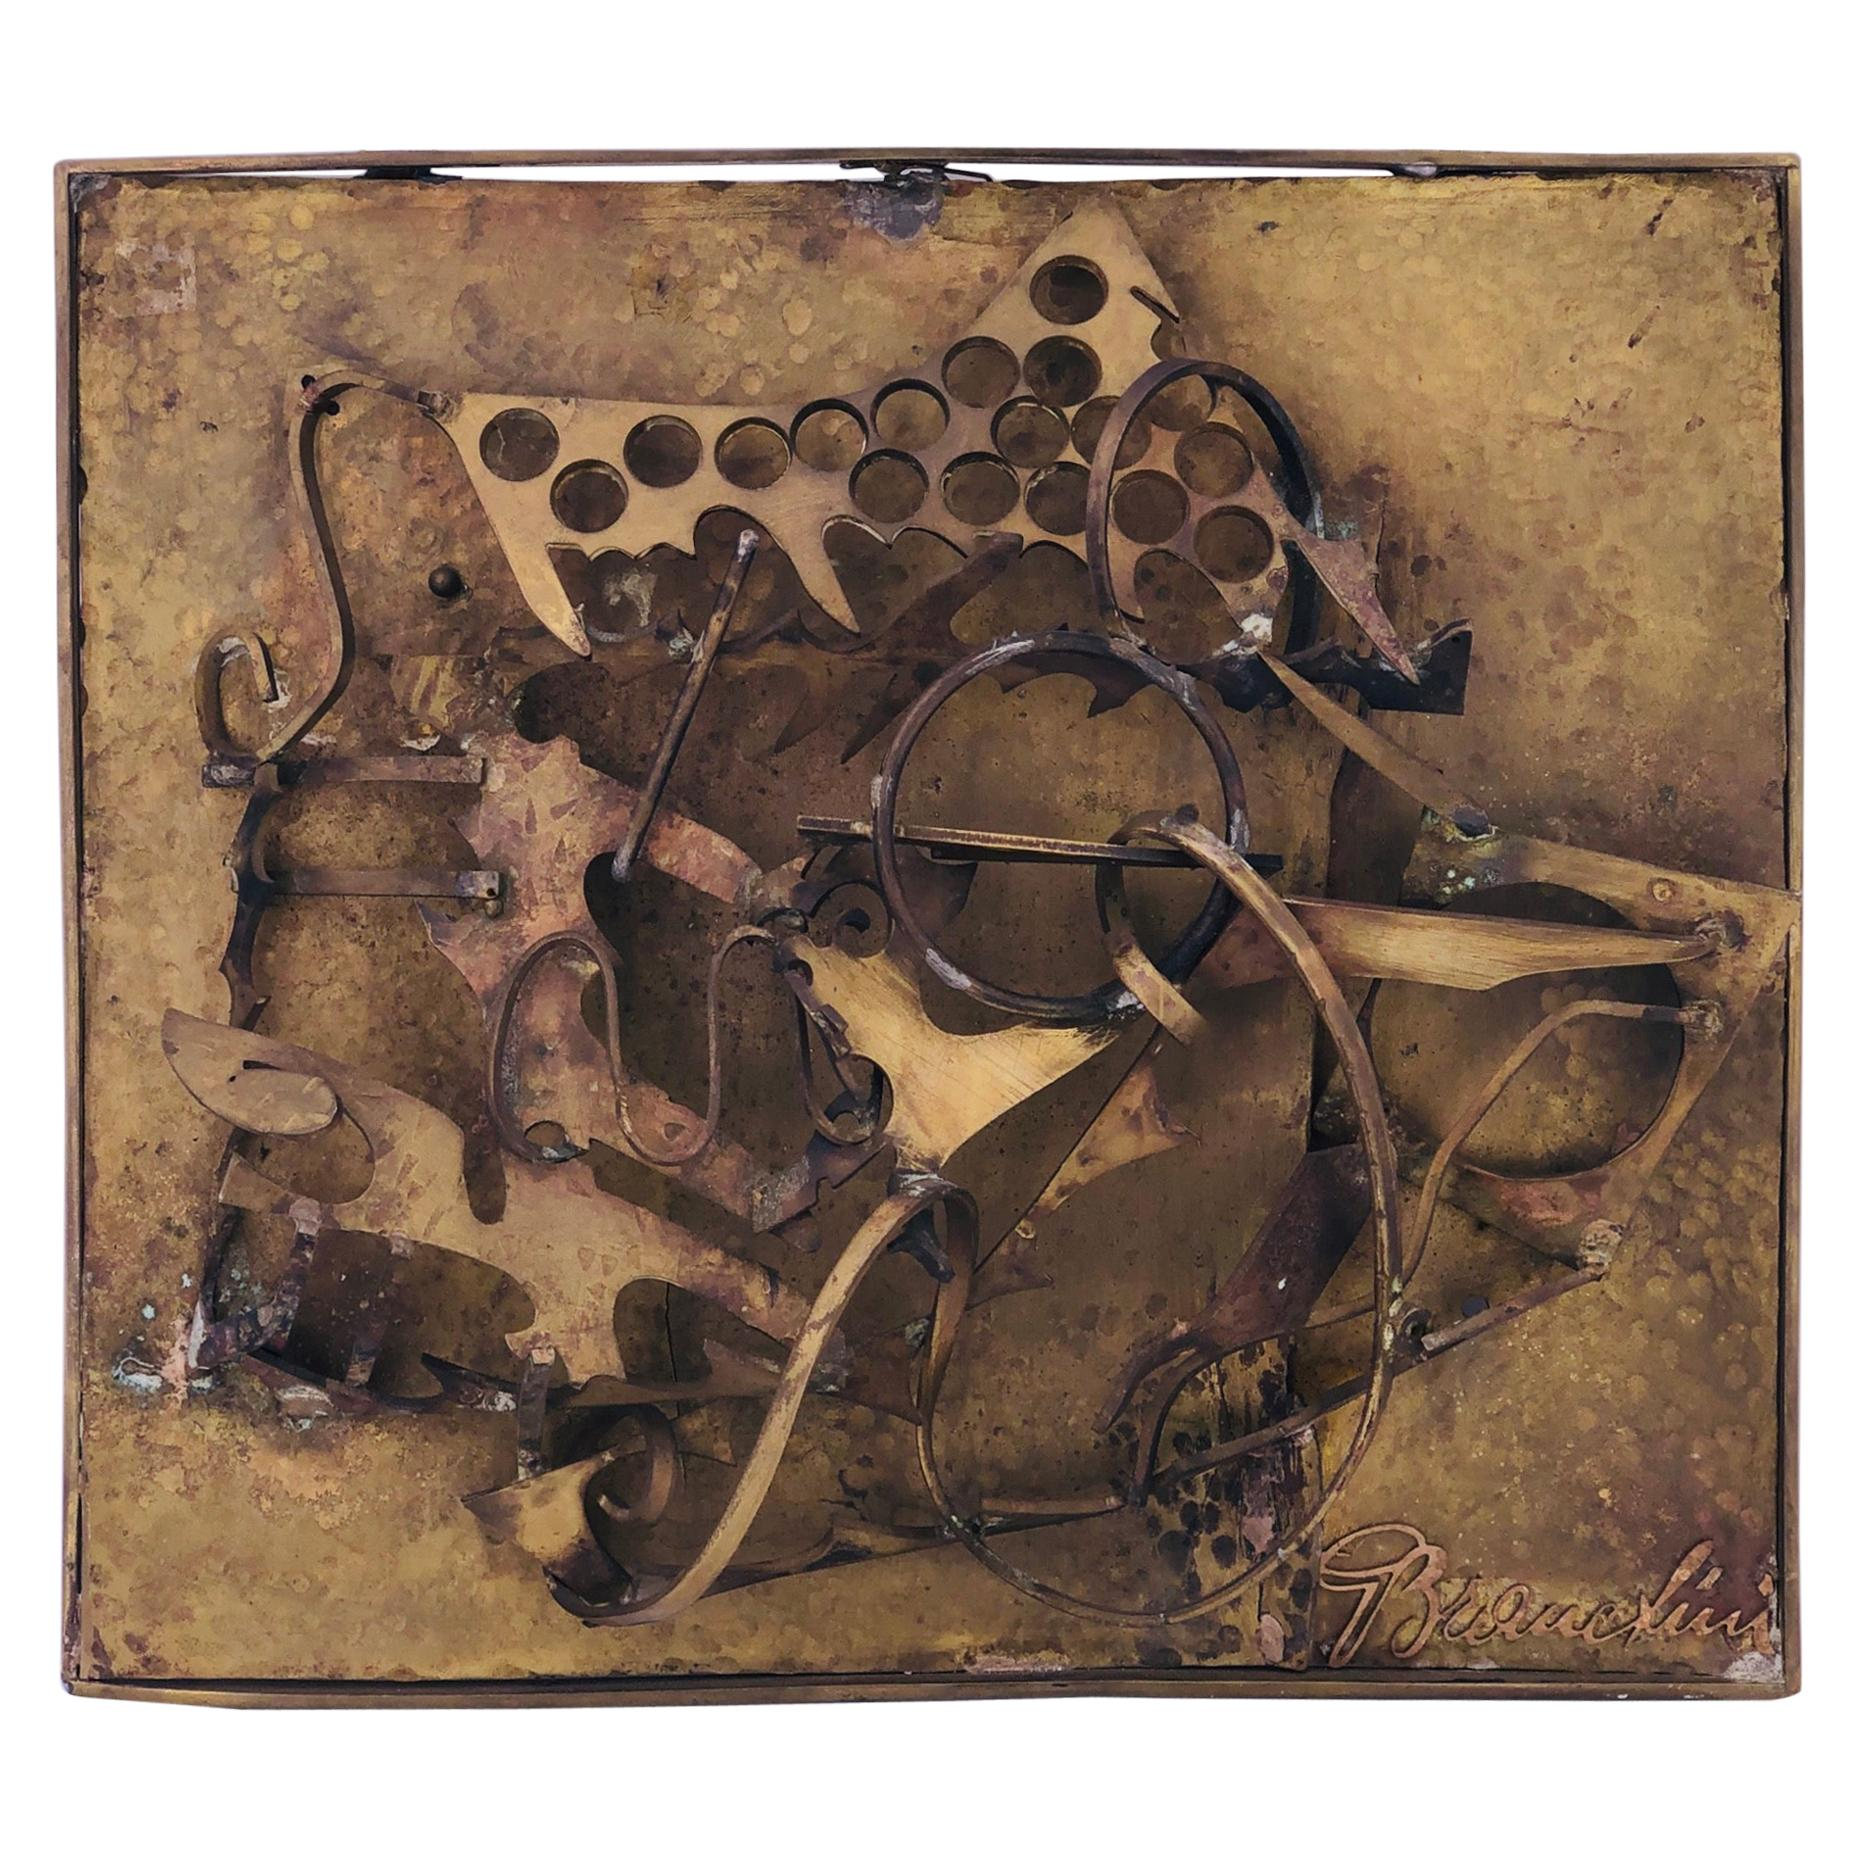 Brutalist Patinated Solid Bronze Abstract Wall Sculpture